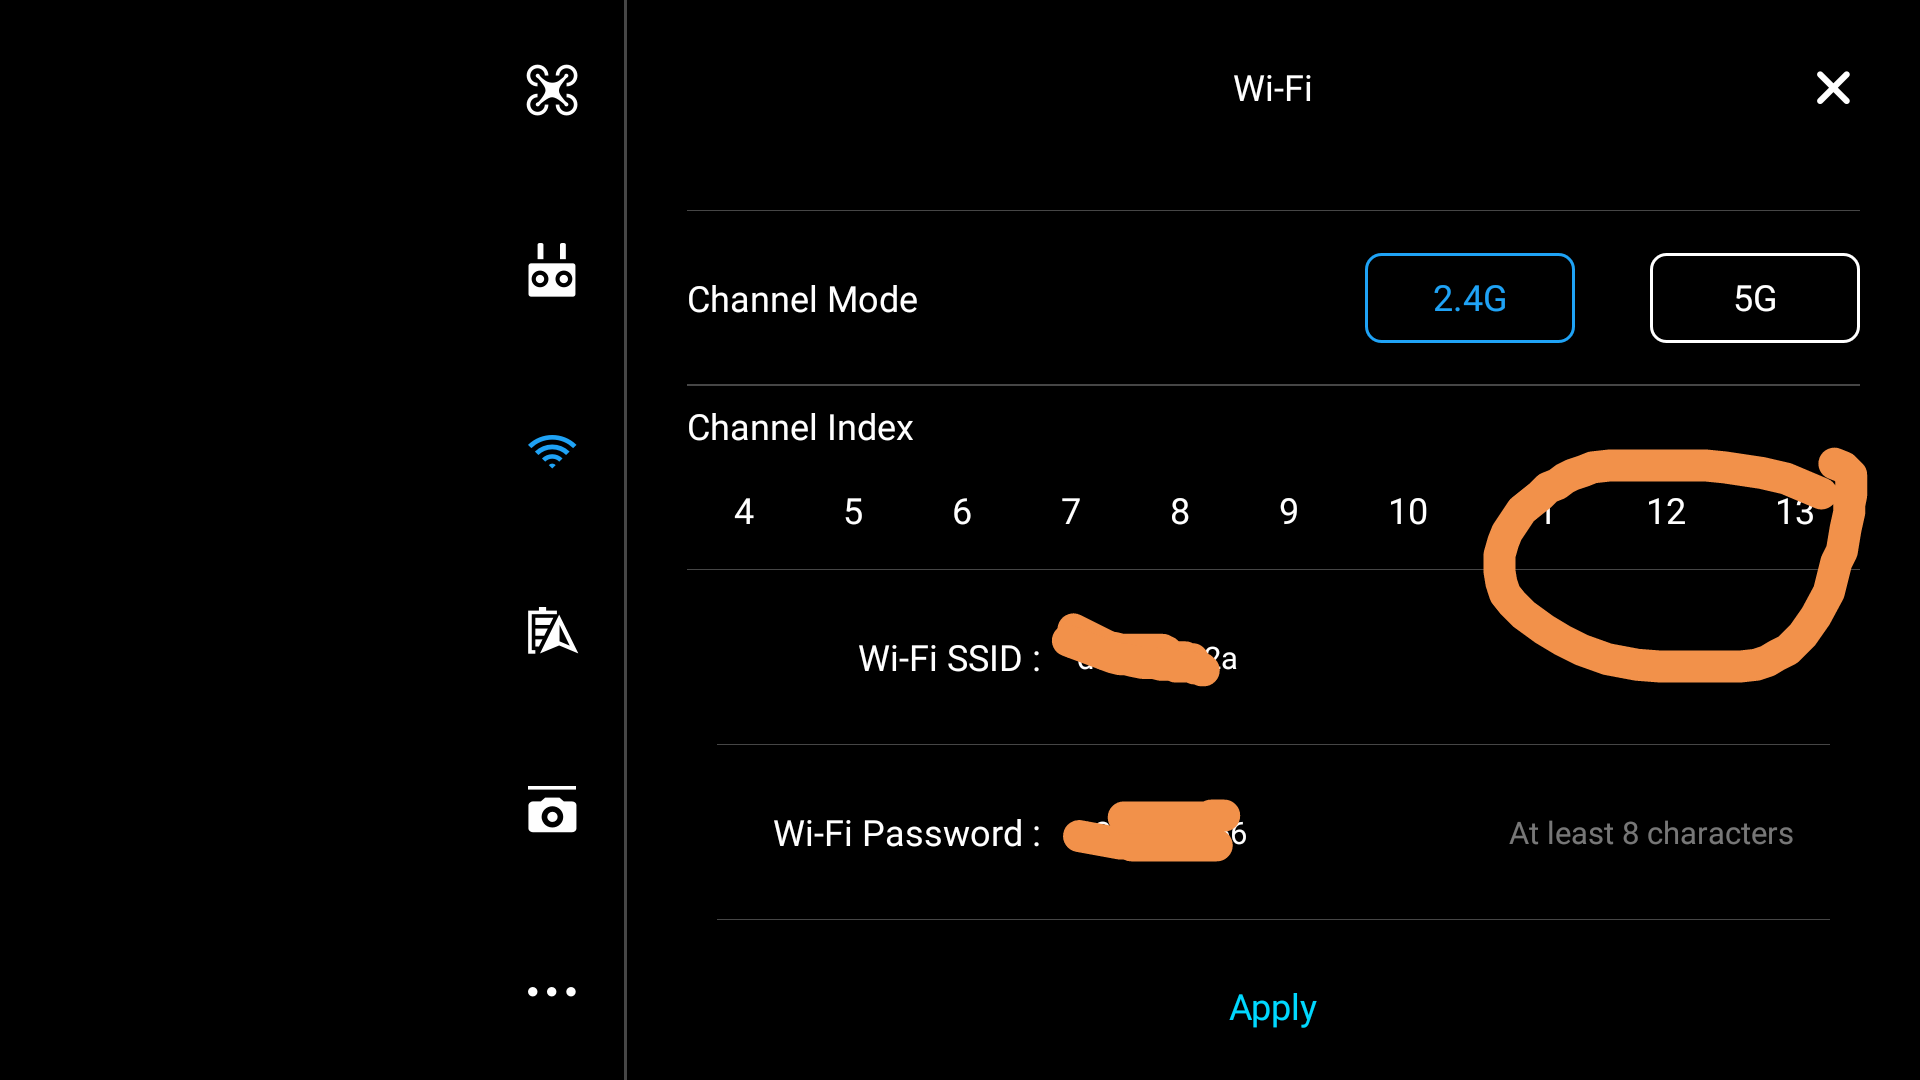 Switch to FCC mode in Europe, and fly miles instead of just